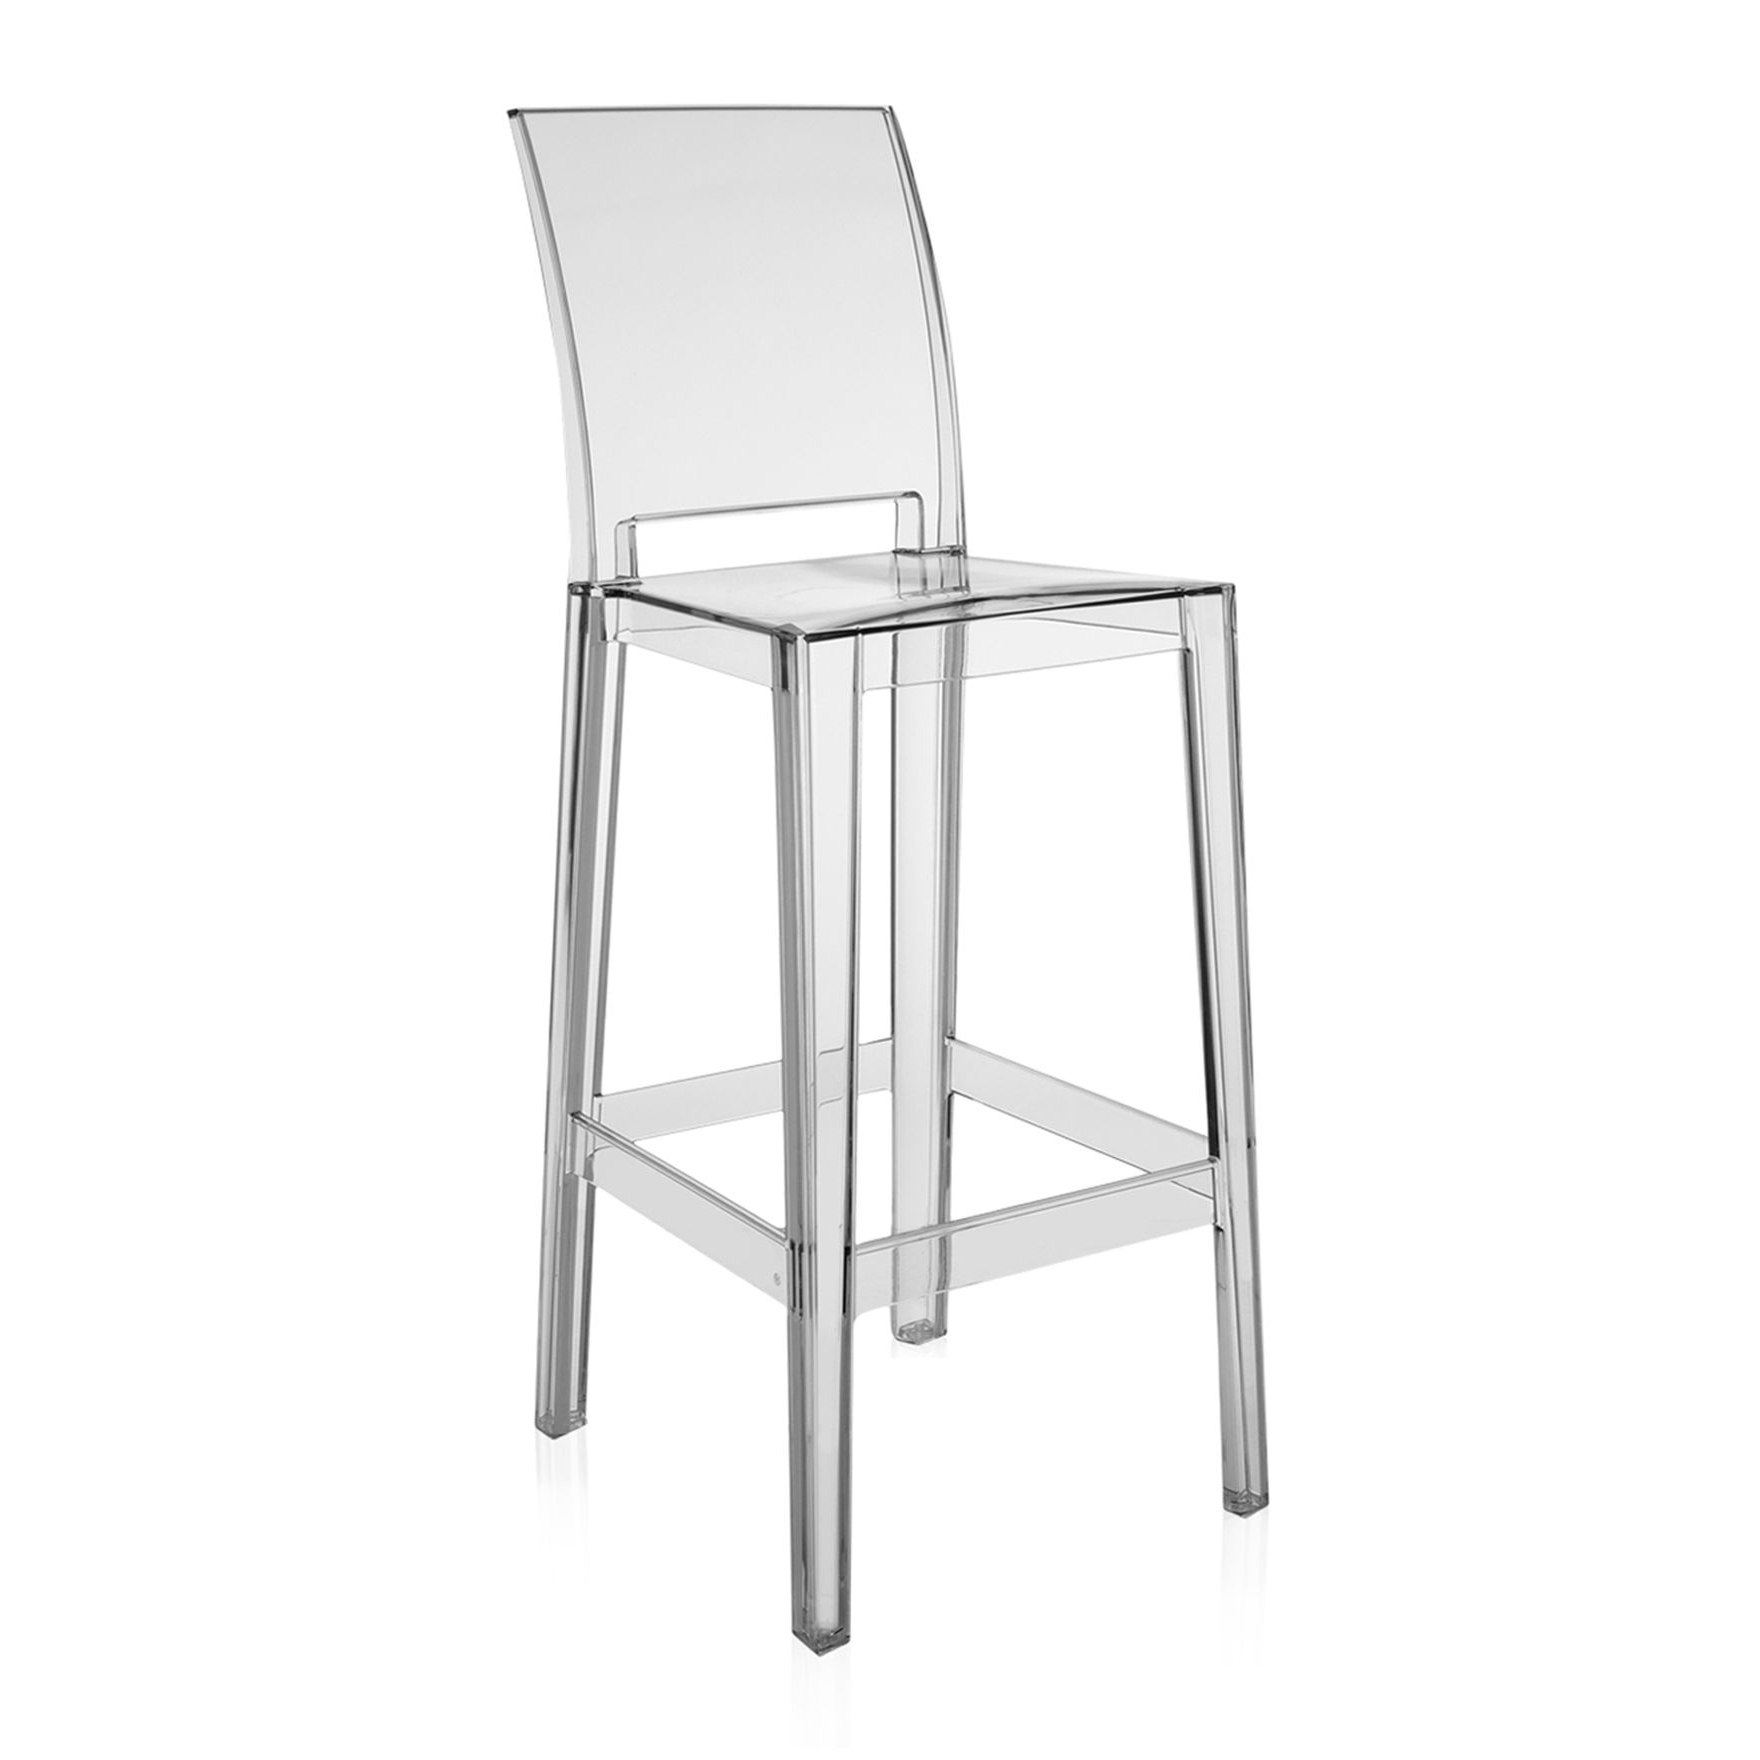 Kartell e More bar stool 75H with square back